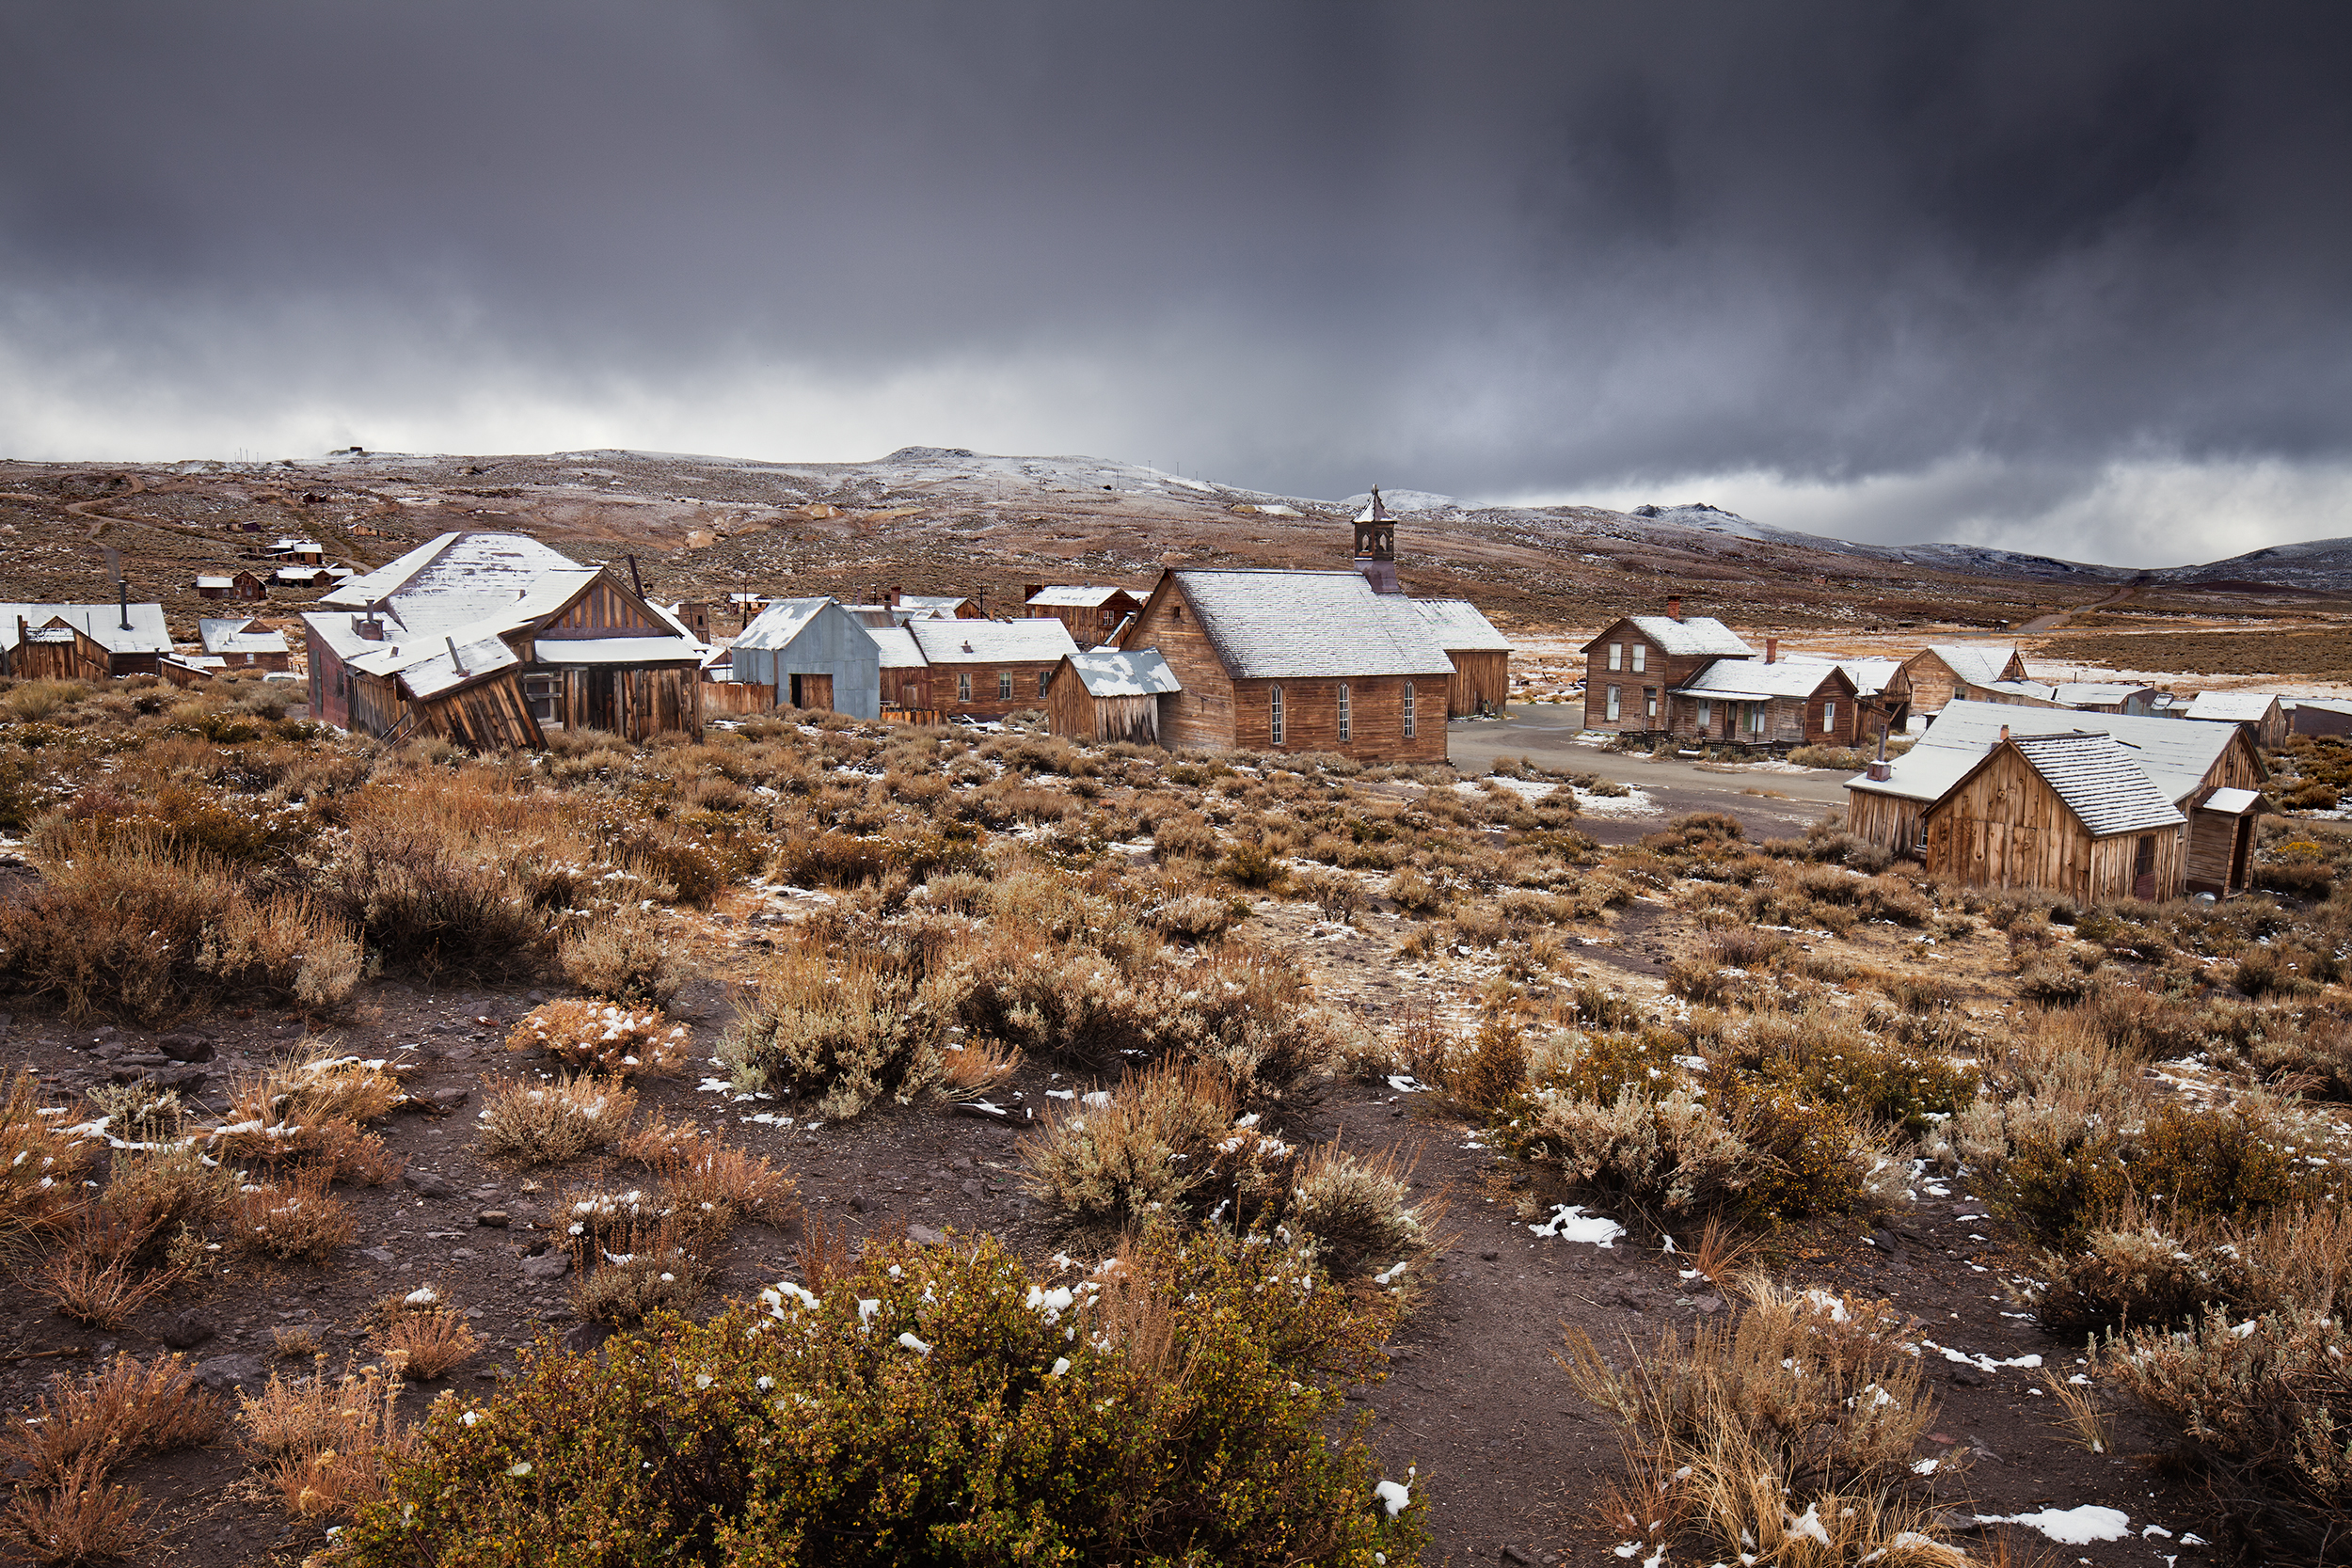 Approaching Storm - Bodie (5996)